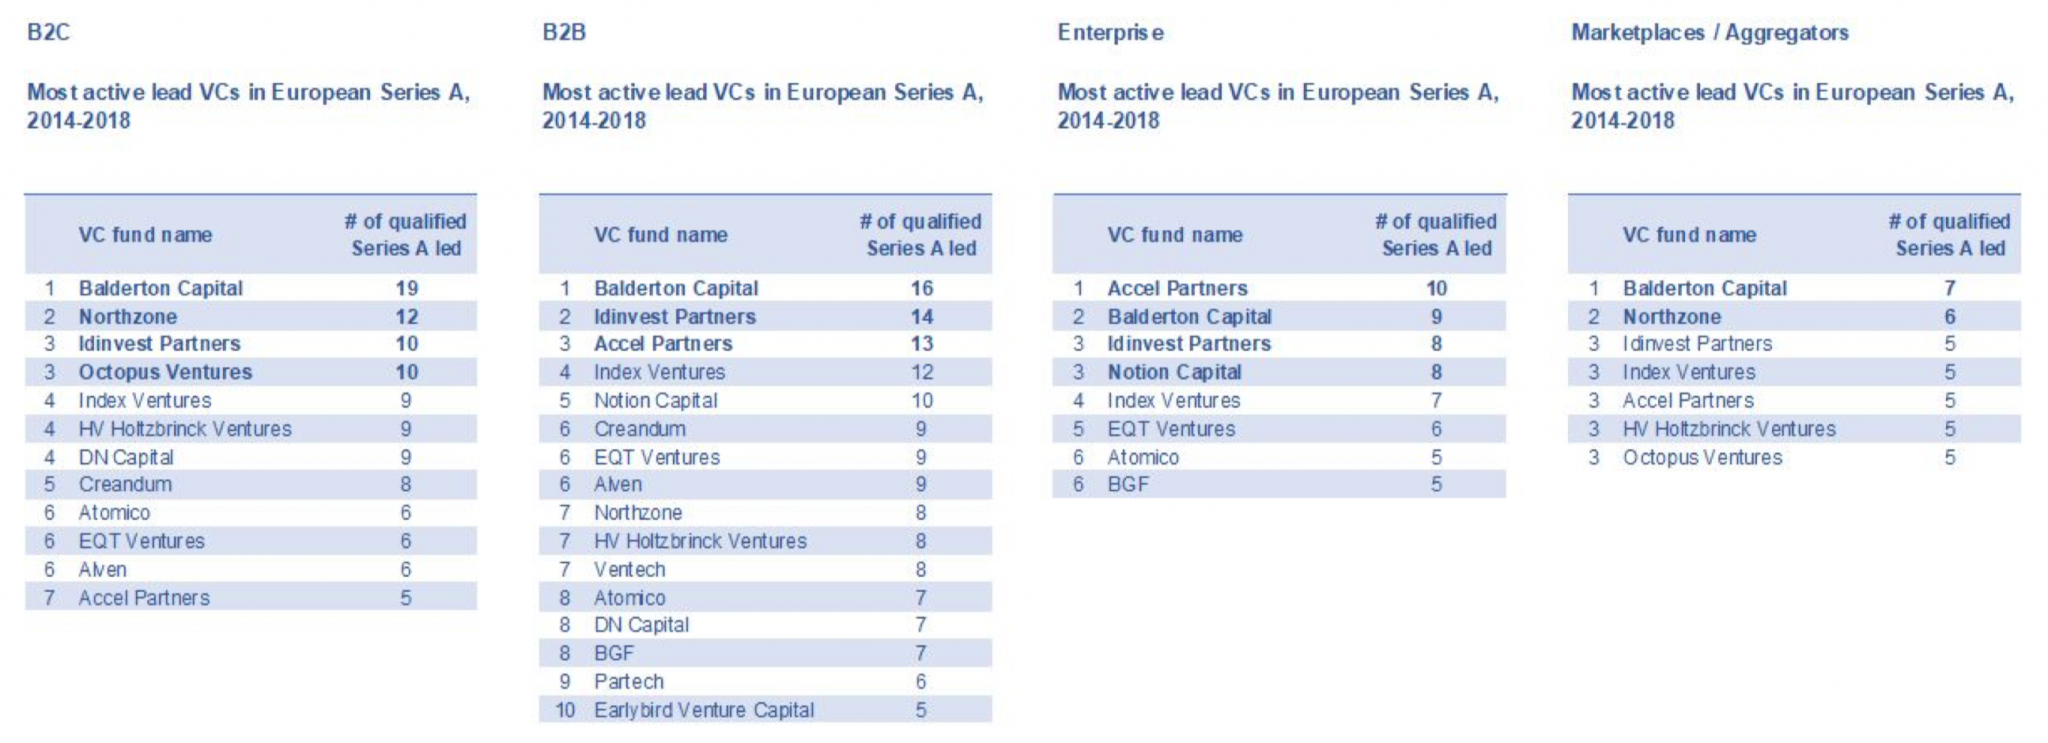 Profiles of VCs by sector